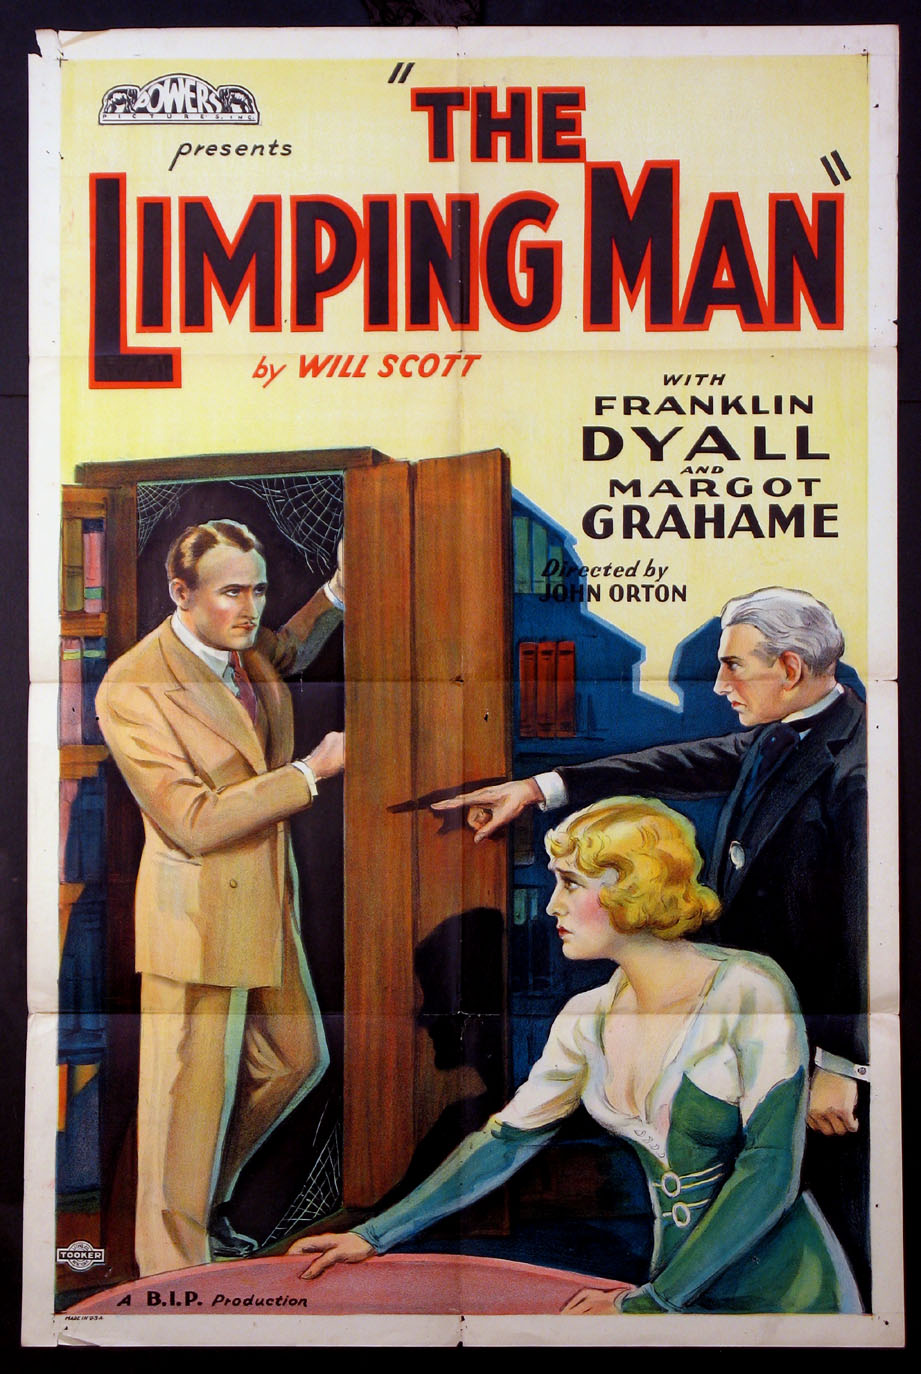 LIMPING MAN, THE @ FilmPosters.com